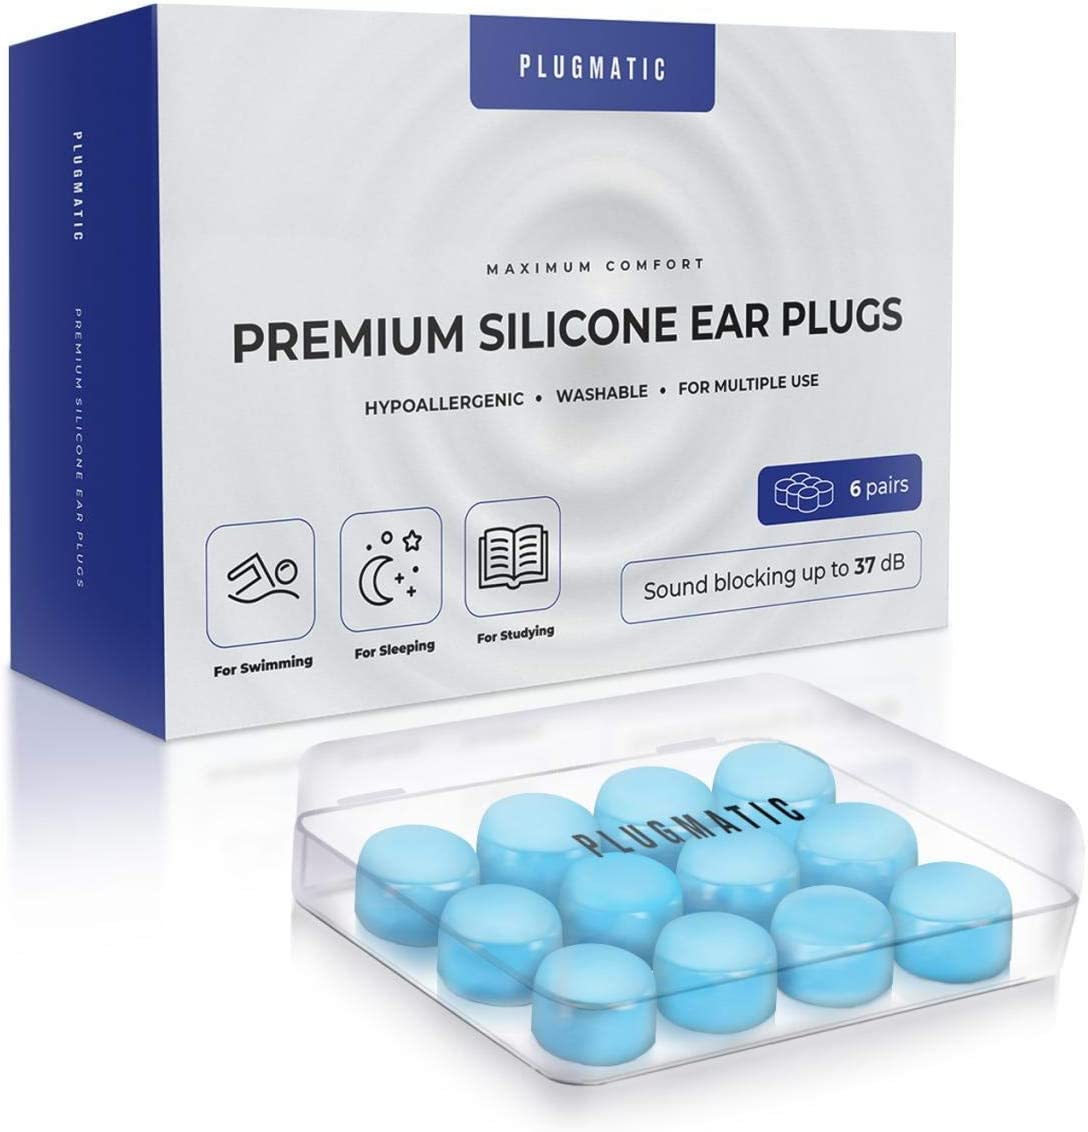 Ear Plugs for Sleeping Silicone So Moldable Cheap mail order sales Reusable 5% OFF Waterproof